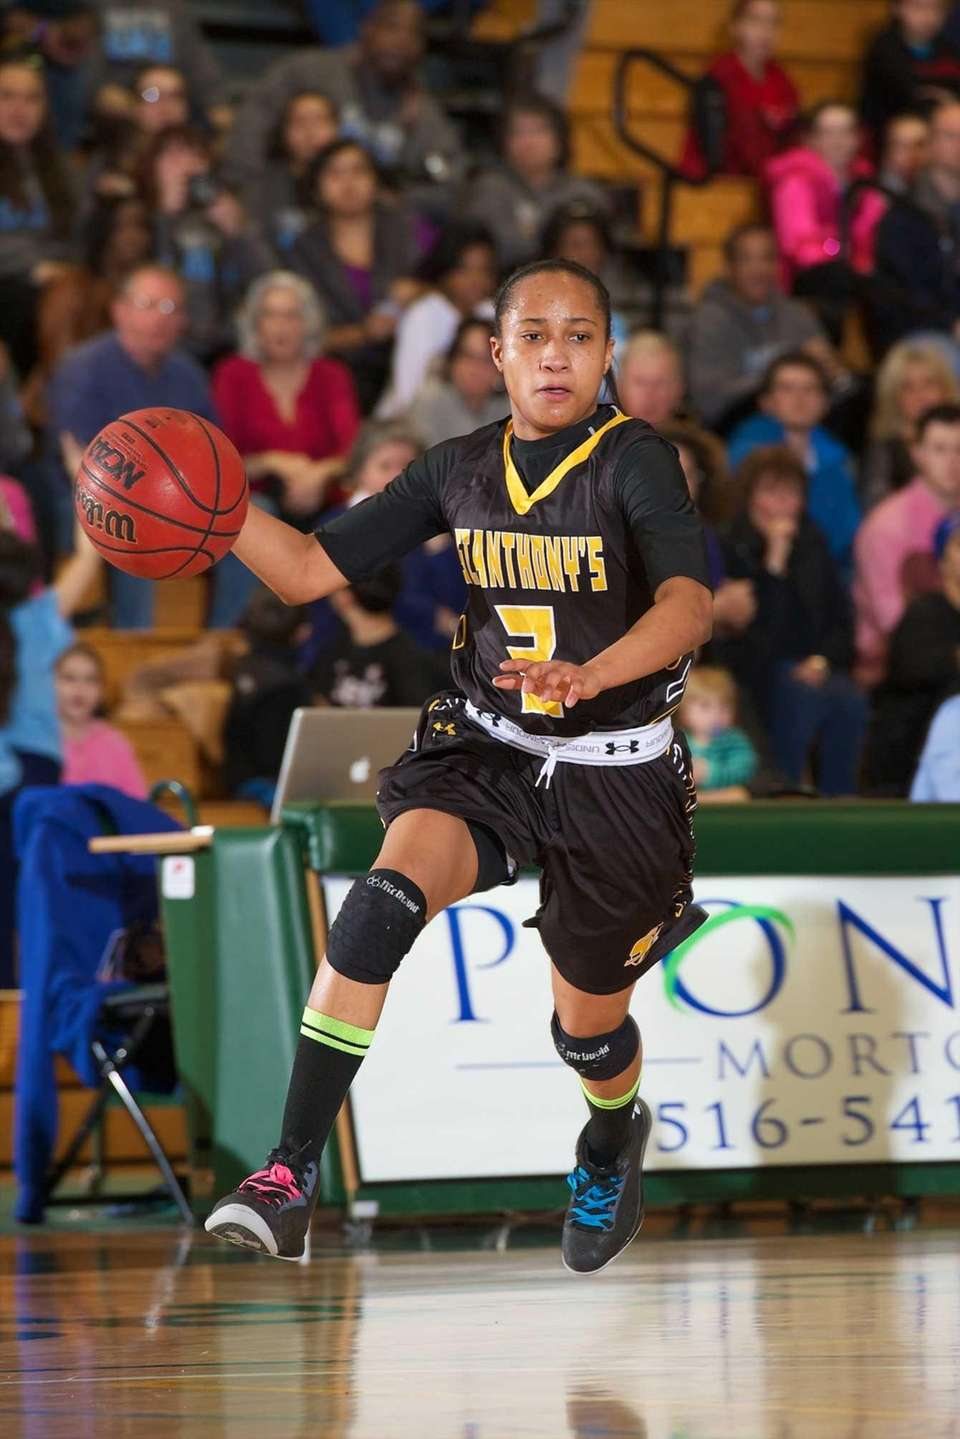 St. Anthony's guard Charise Wilson drives to the